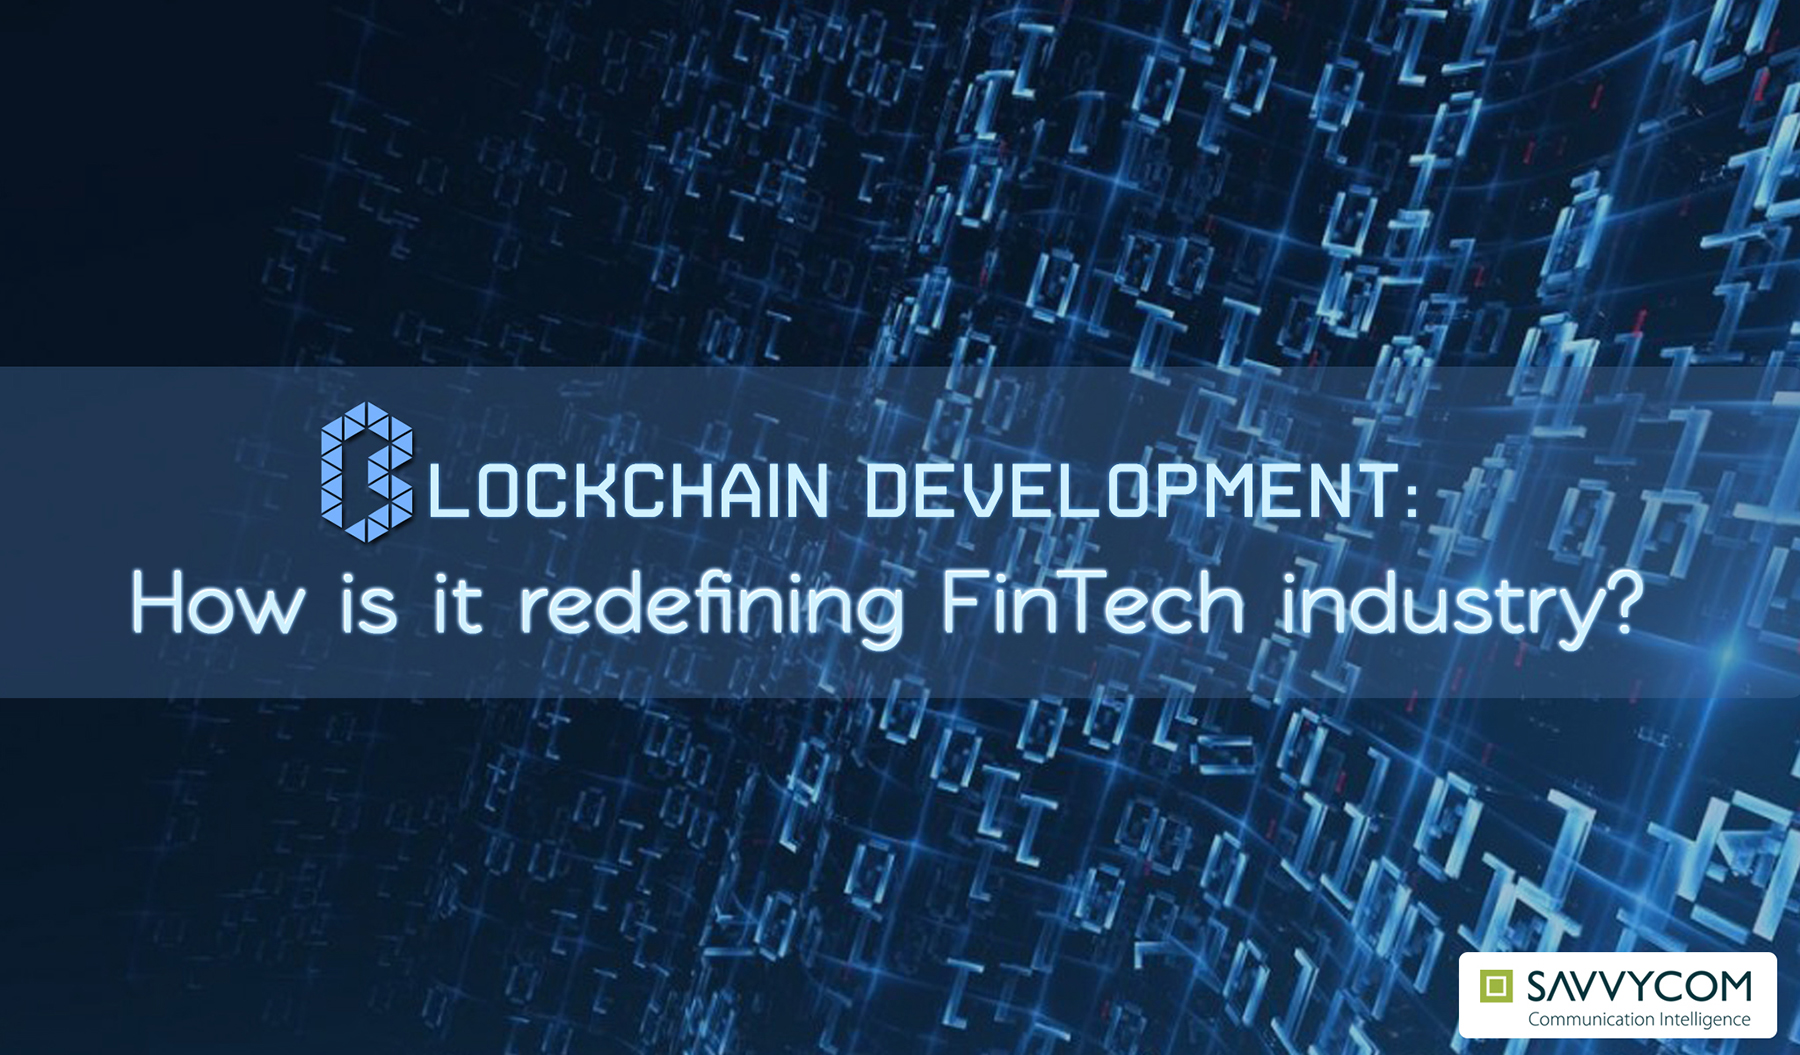 blockchain development, blockchain technology, blockchain and fintech, blockchain and cryptocurrency